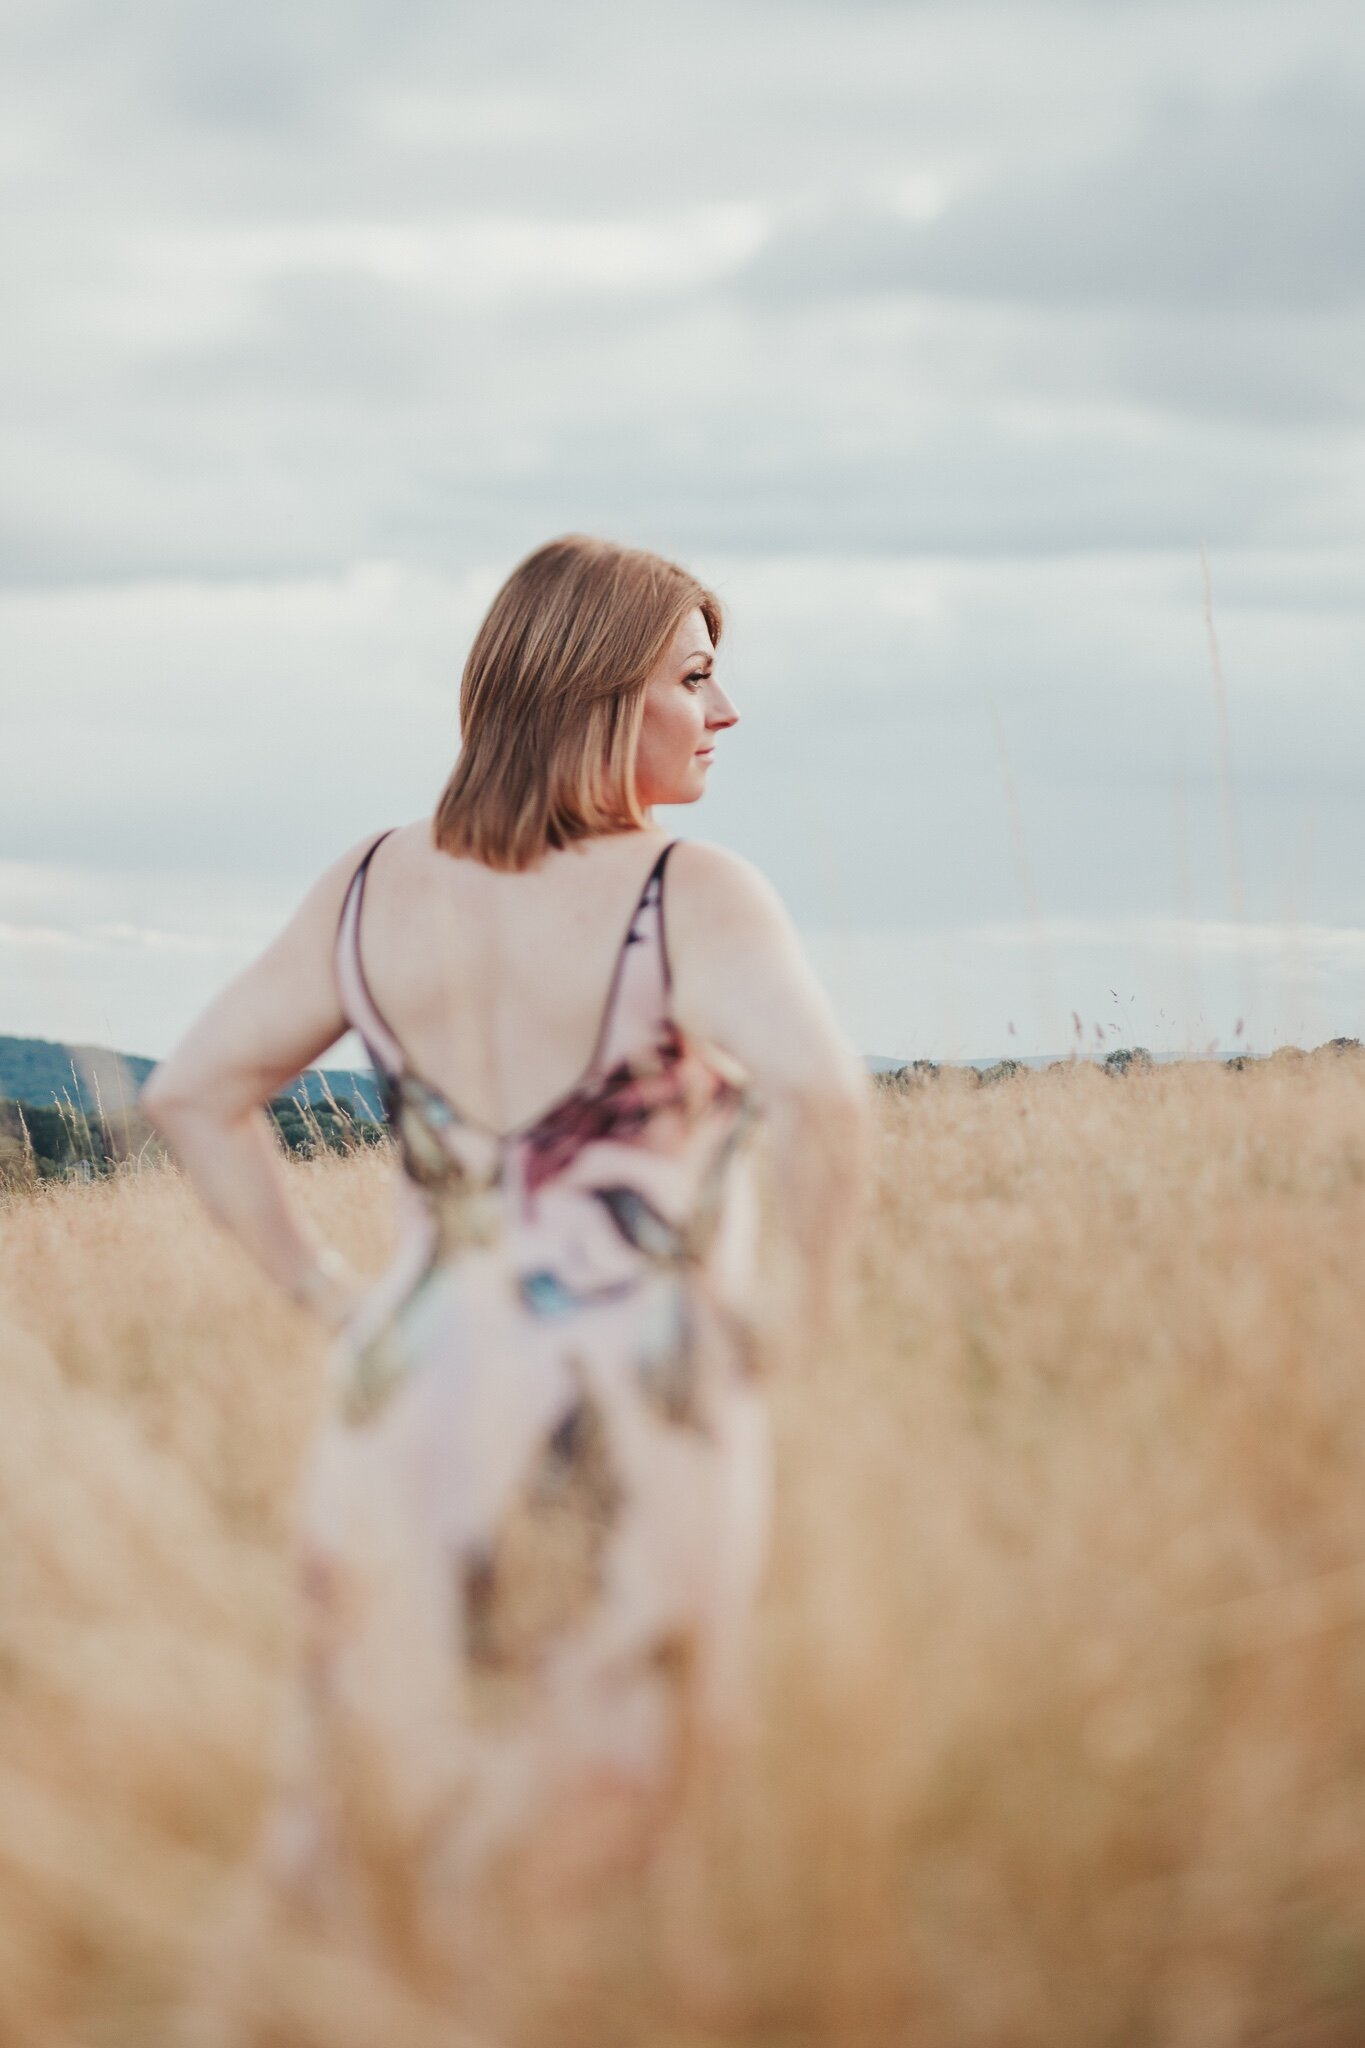 Woman posing in a field during an outdoor boudoir photo shoot in Shropshire